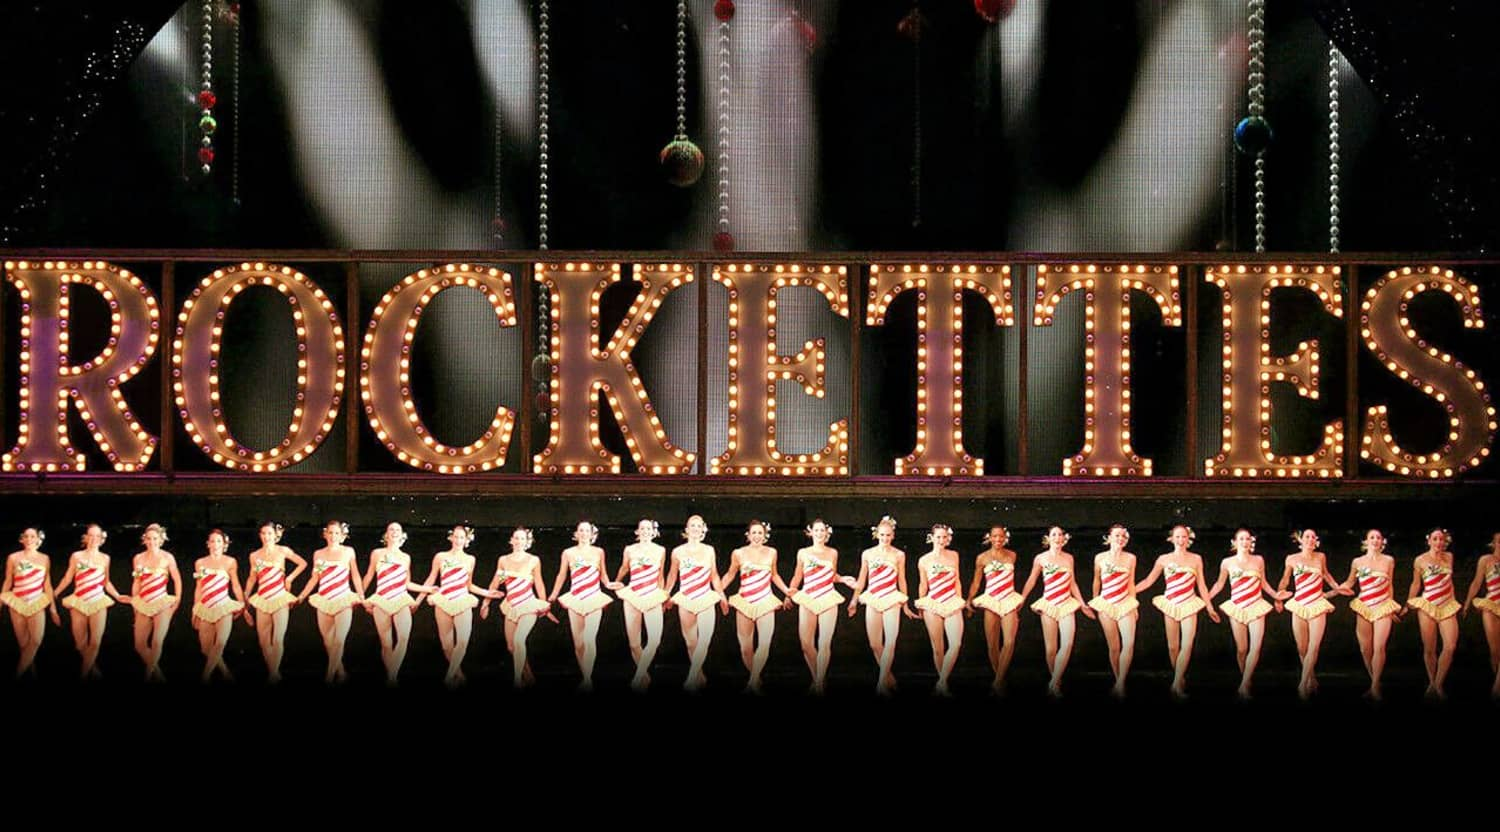 Christmas Concerts 2020 Utah Stubhub Christmas Spectacular Starring the Radio City Rockettes Tickets